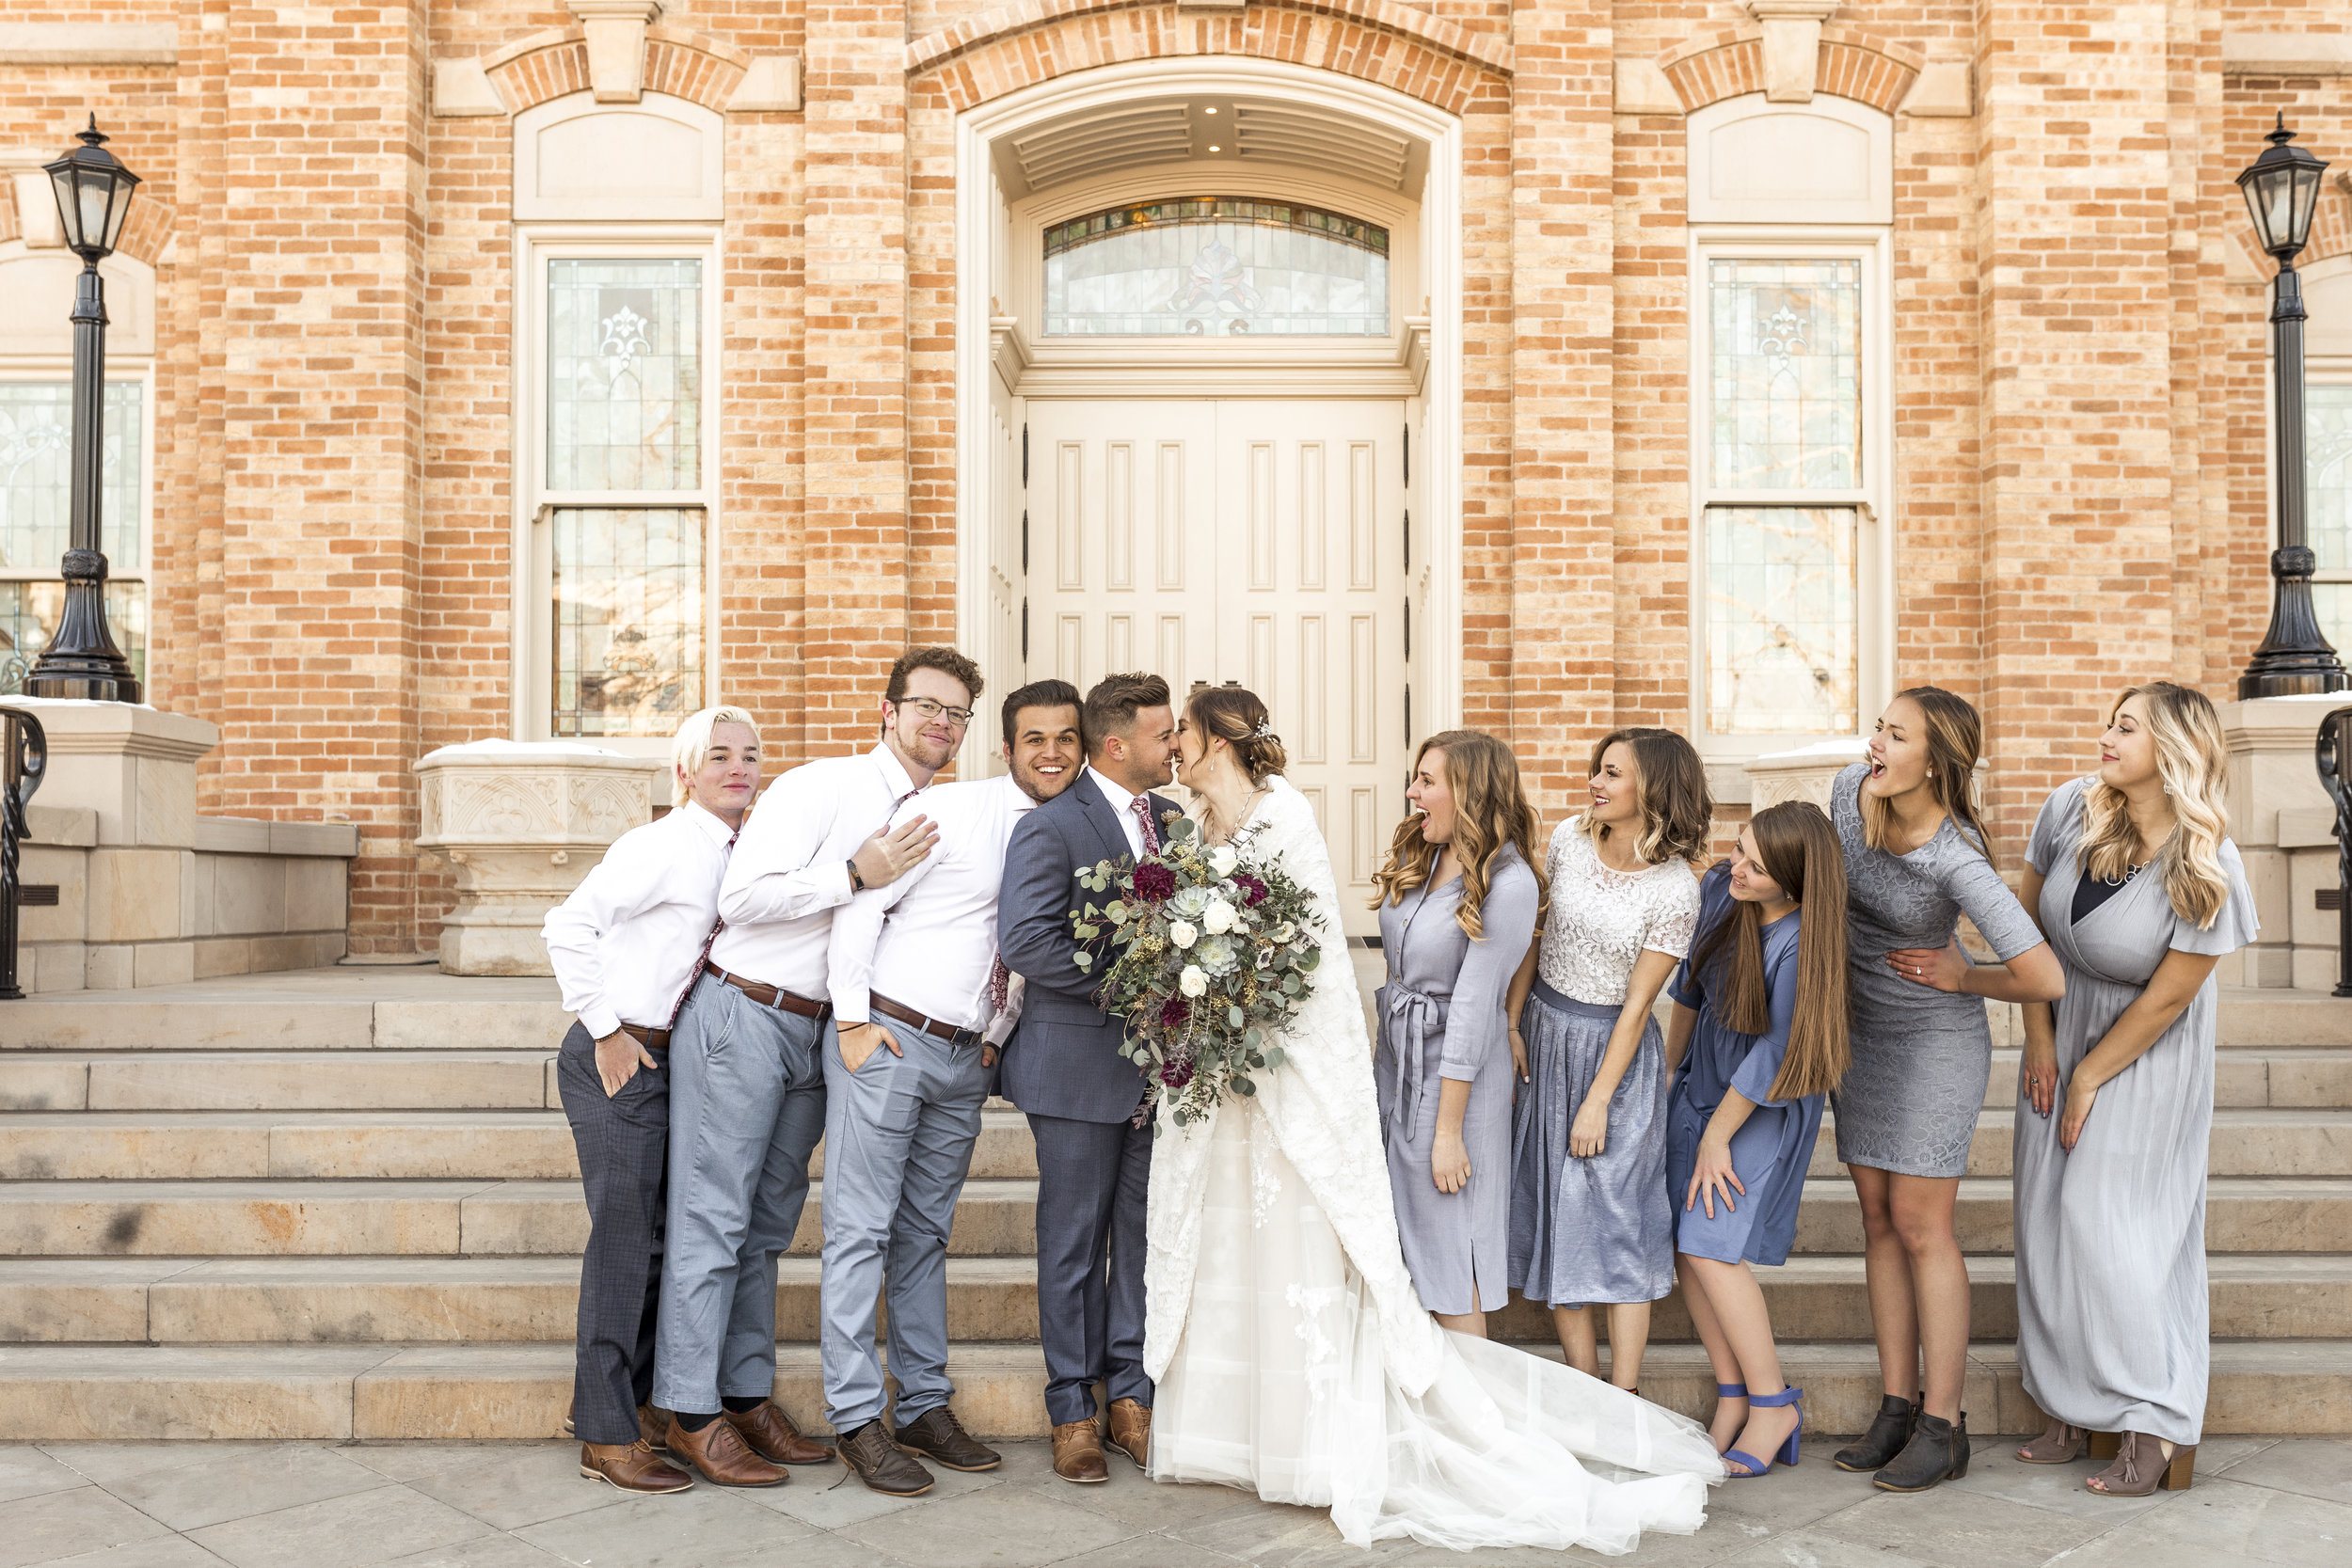 Skyler + Austin | Provo City Center Temple Wedding | Bri Bergman Photography 090.JPG